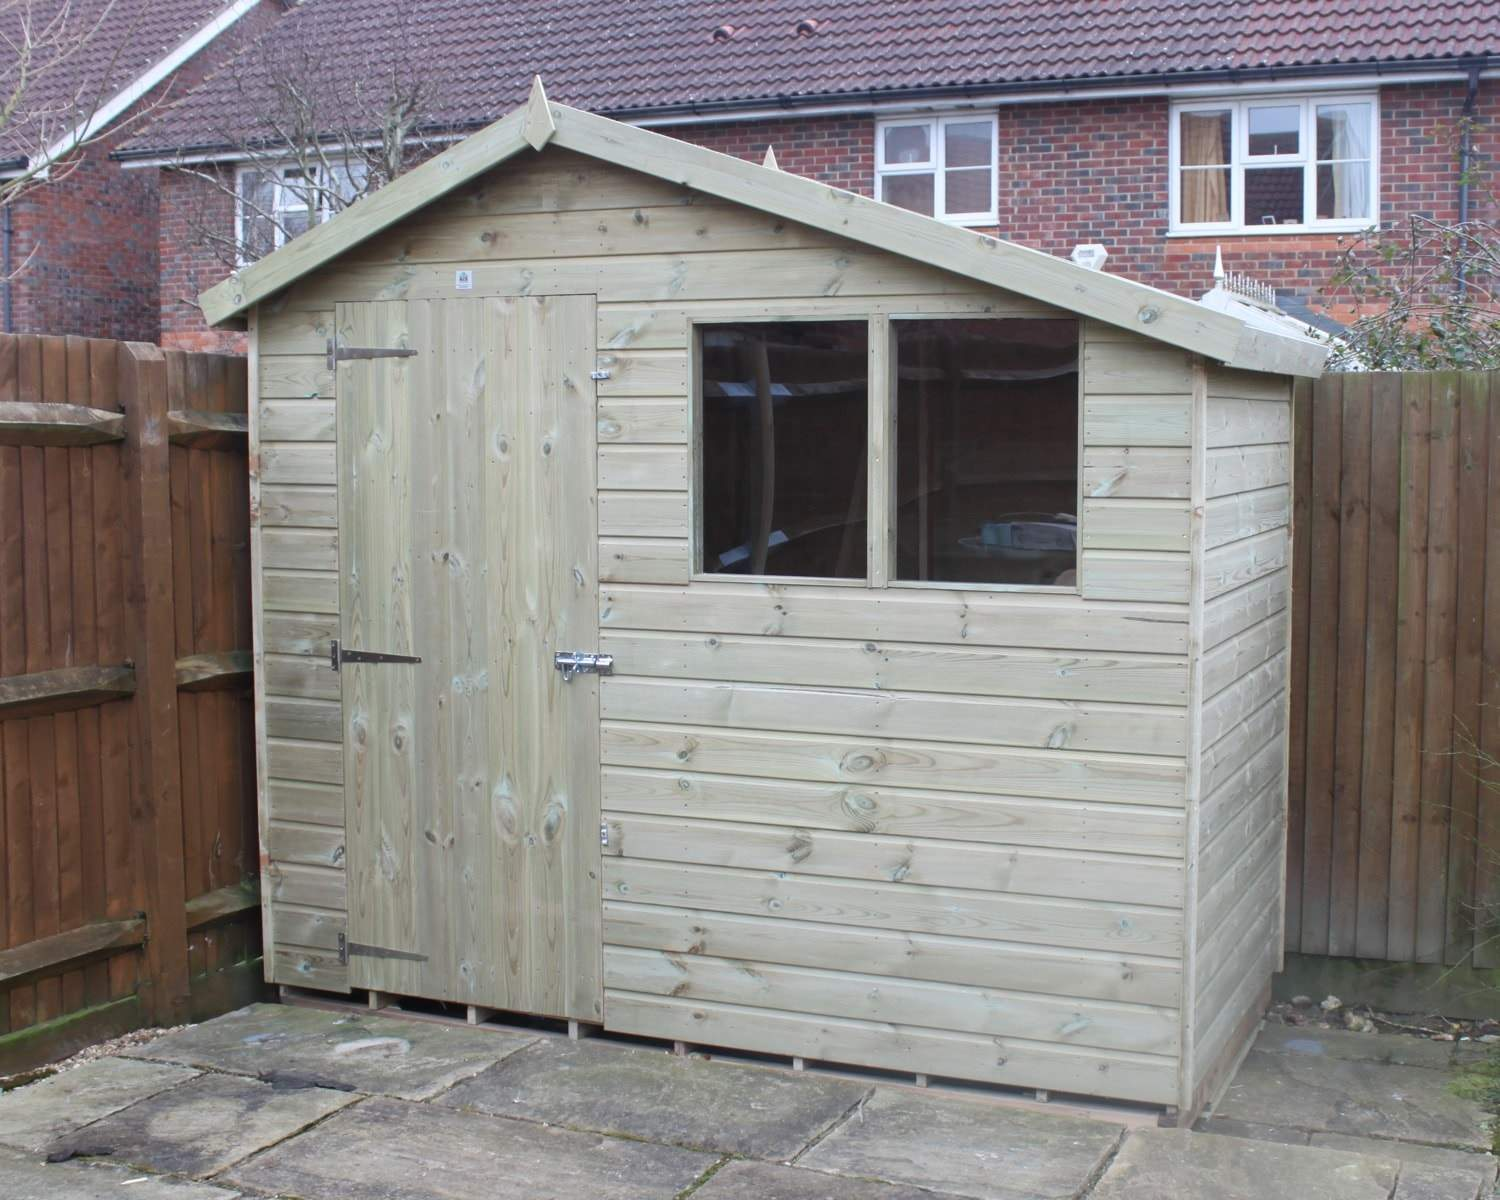 The Cambridge Shed Pressure Treated